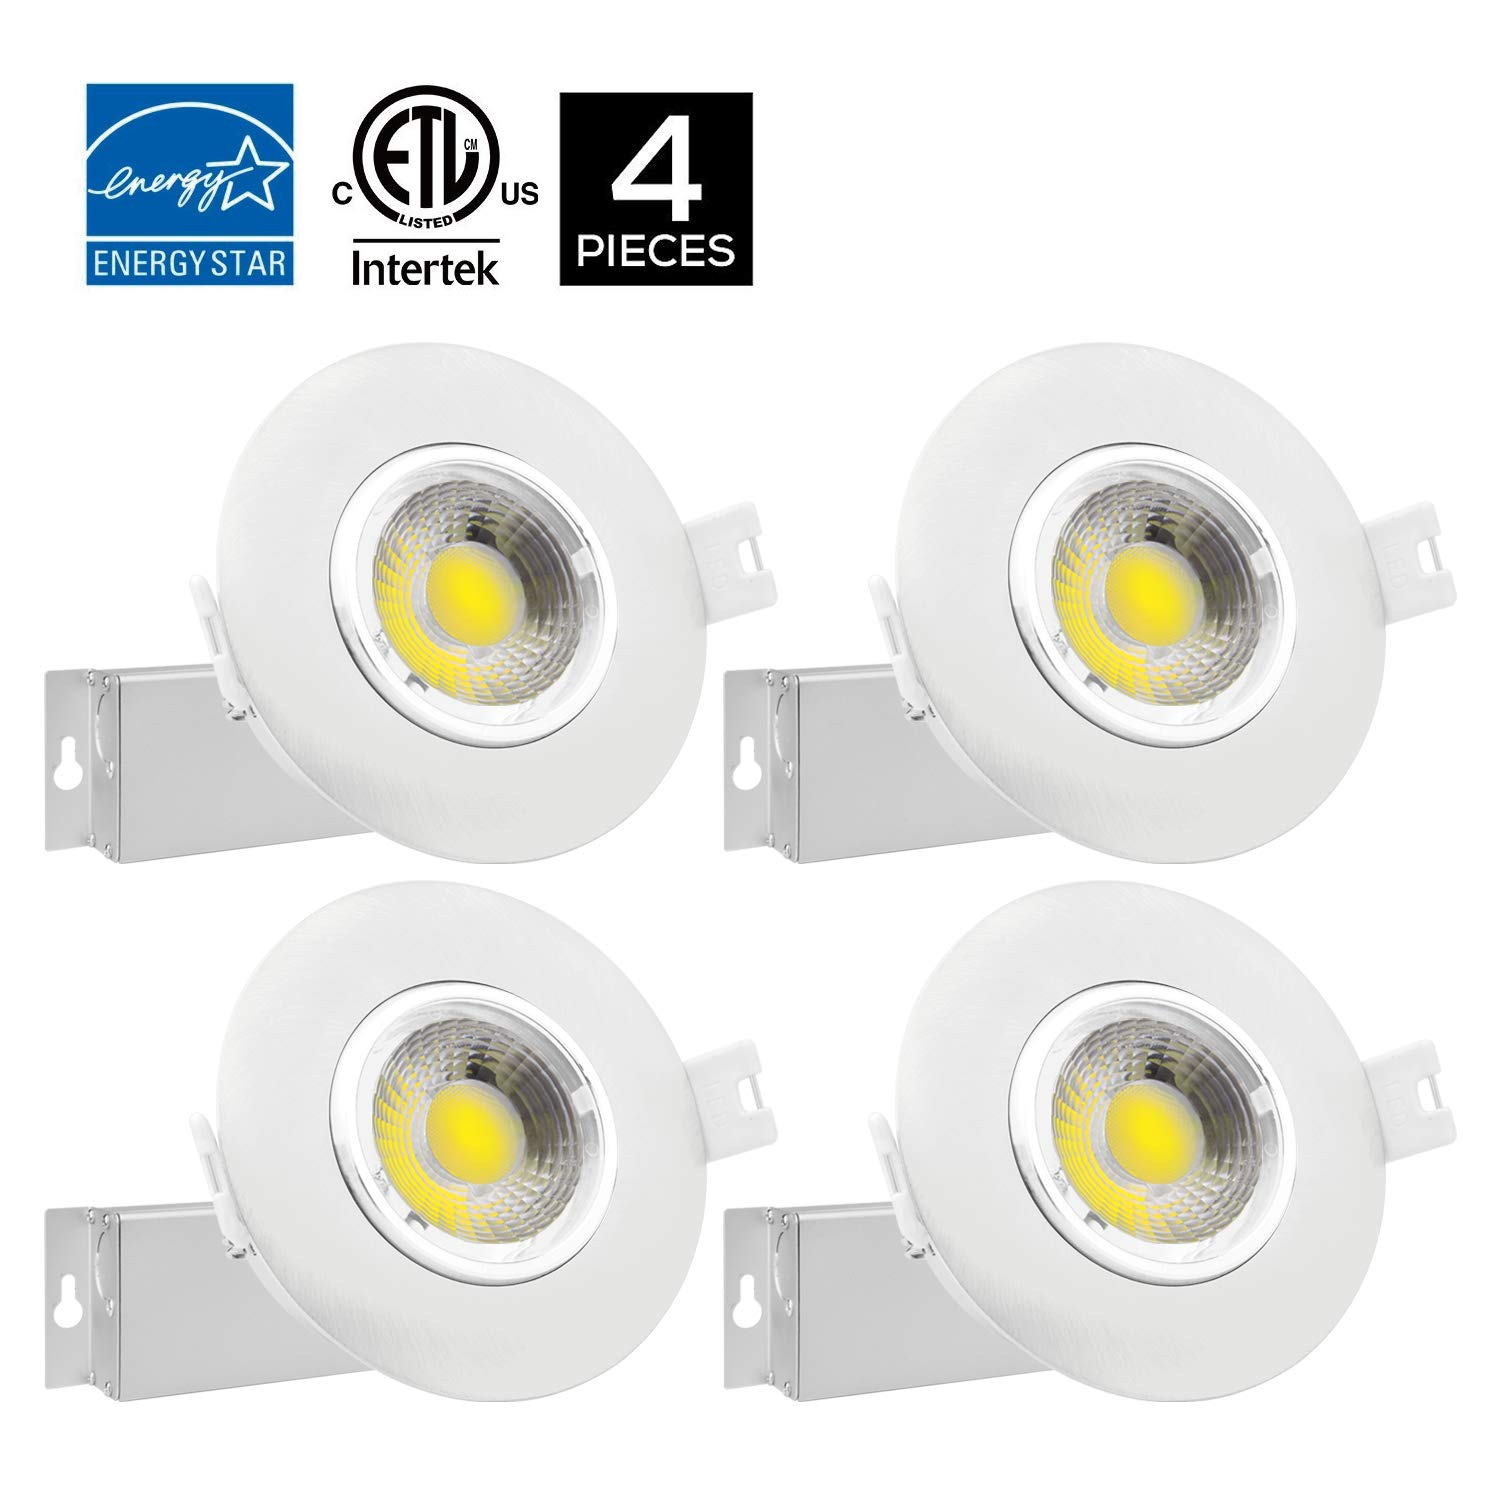 4Pack 3 inch Dimmable Gimbal Recessed LED Downlight 8W (65W Equiv.) No Can Needed, IC Rated, ENERGY STAR 5000K Daylight White 750lm Adjustable LED Retrofit Lighting Fixture